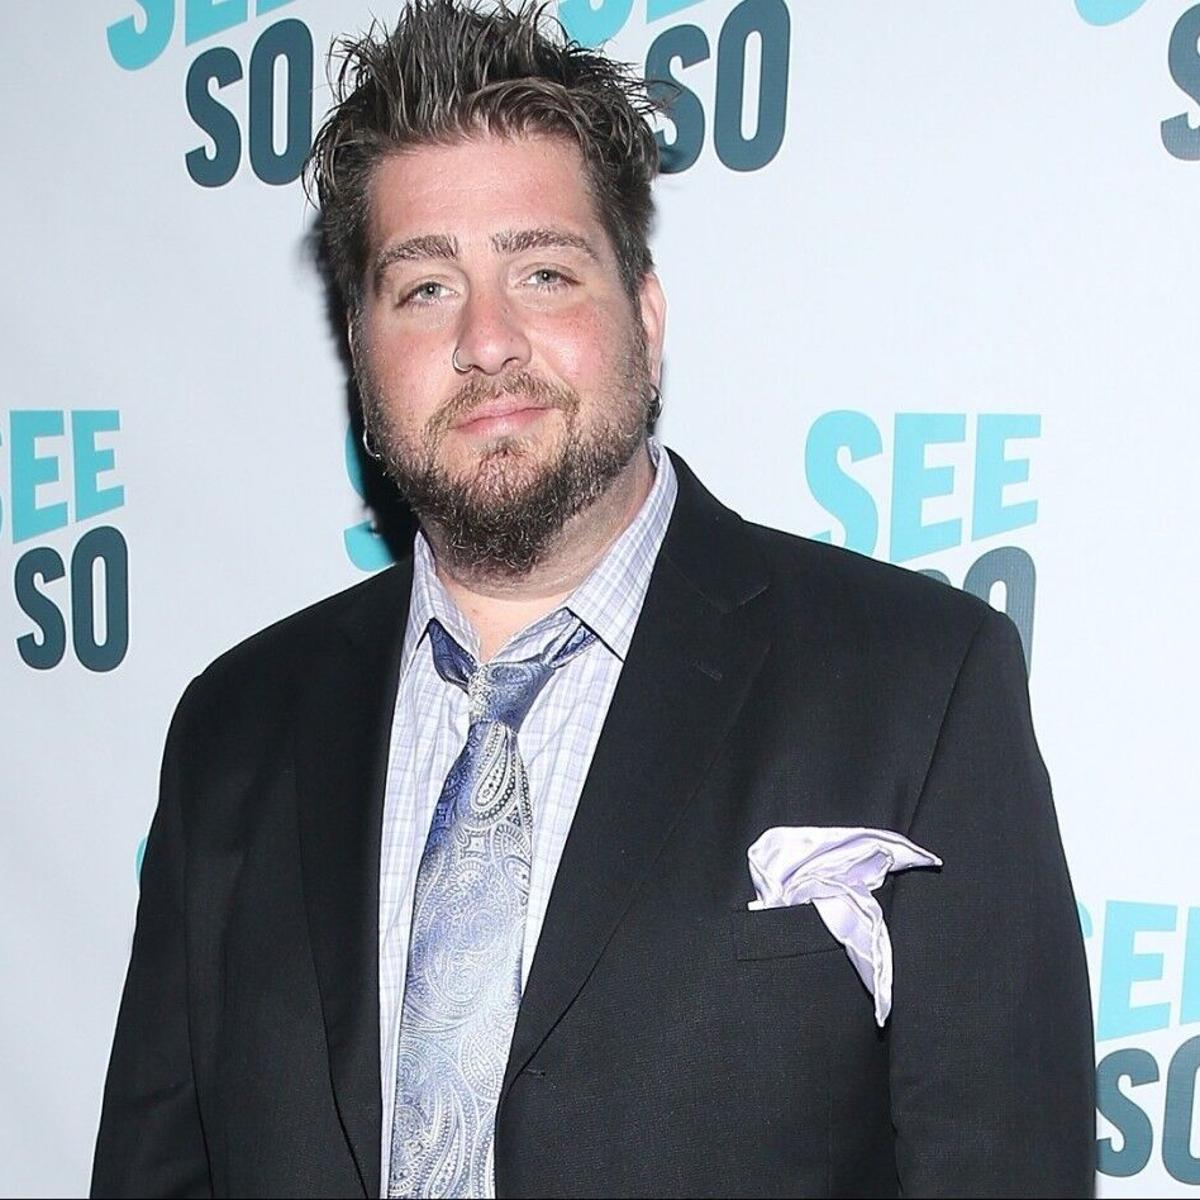 Big Jay Oakerson Works The Crowd For Laughs Entertainment Buffalonews Com Josh potter is known for his work on return to nuke 'em high volume 1 (2013), science team (2014) and the final equation (2009). big jay oakerson works the crowd for